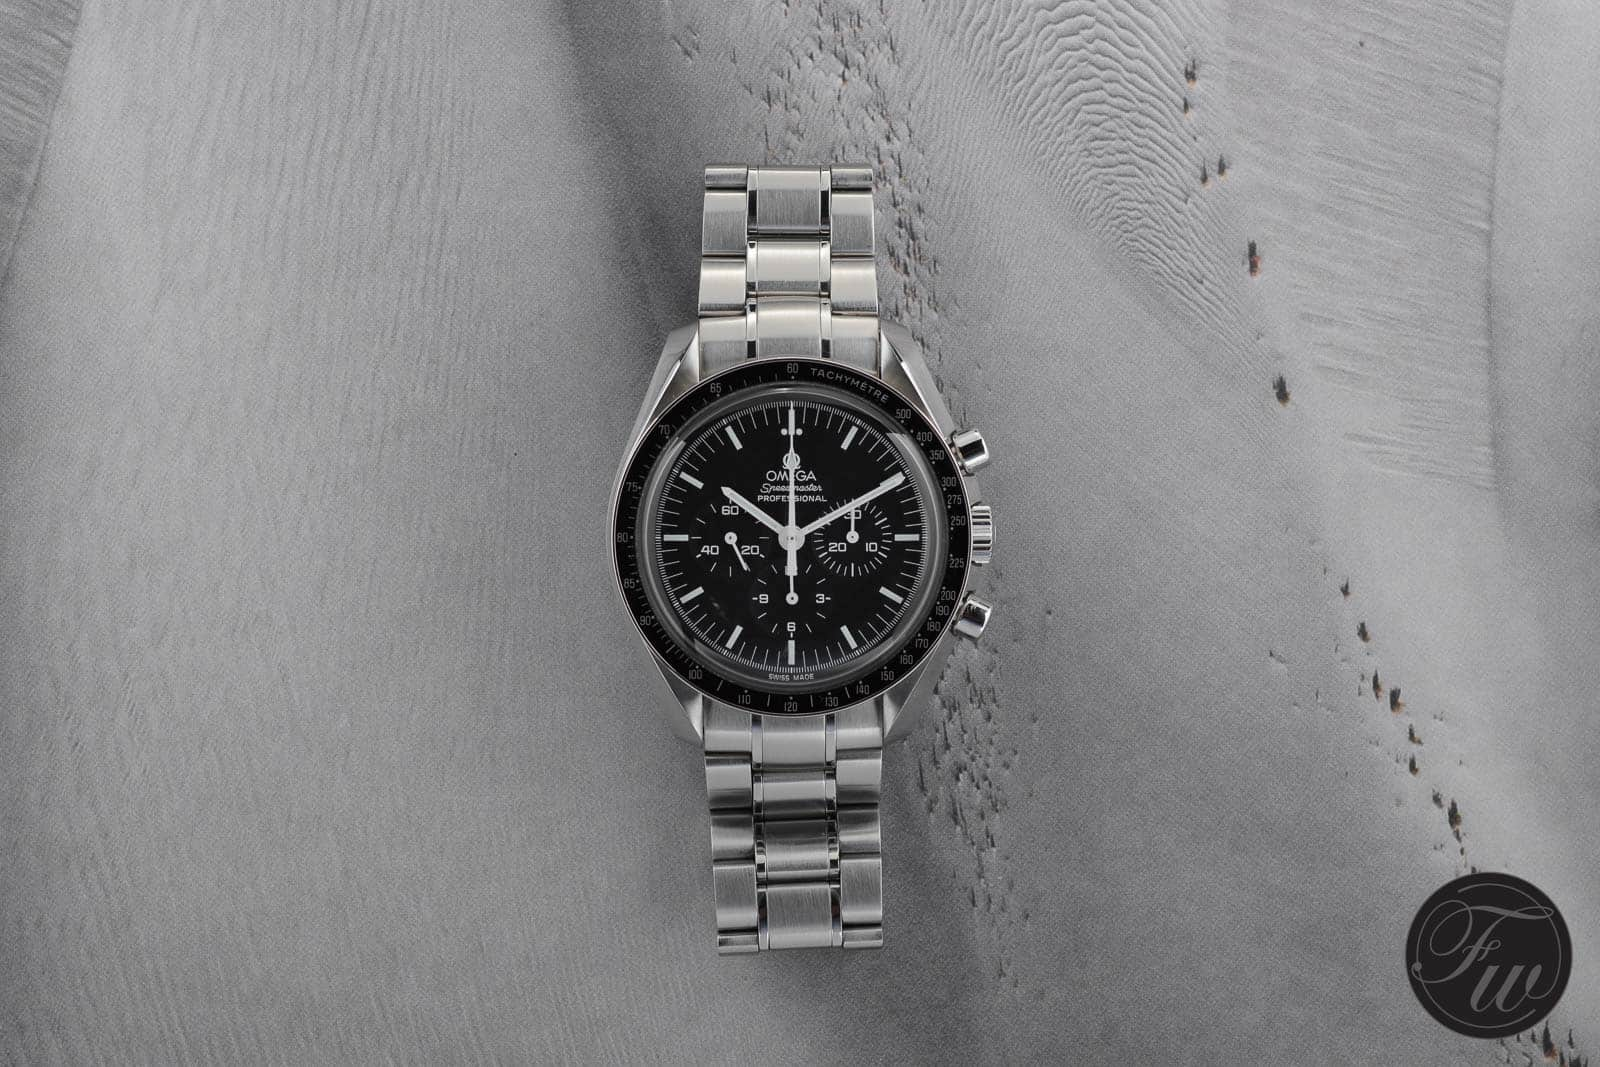 Top 10 Chronographs Overview - Omega Speedmaster